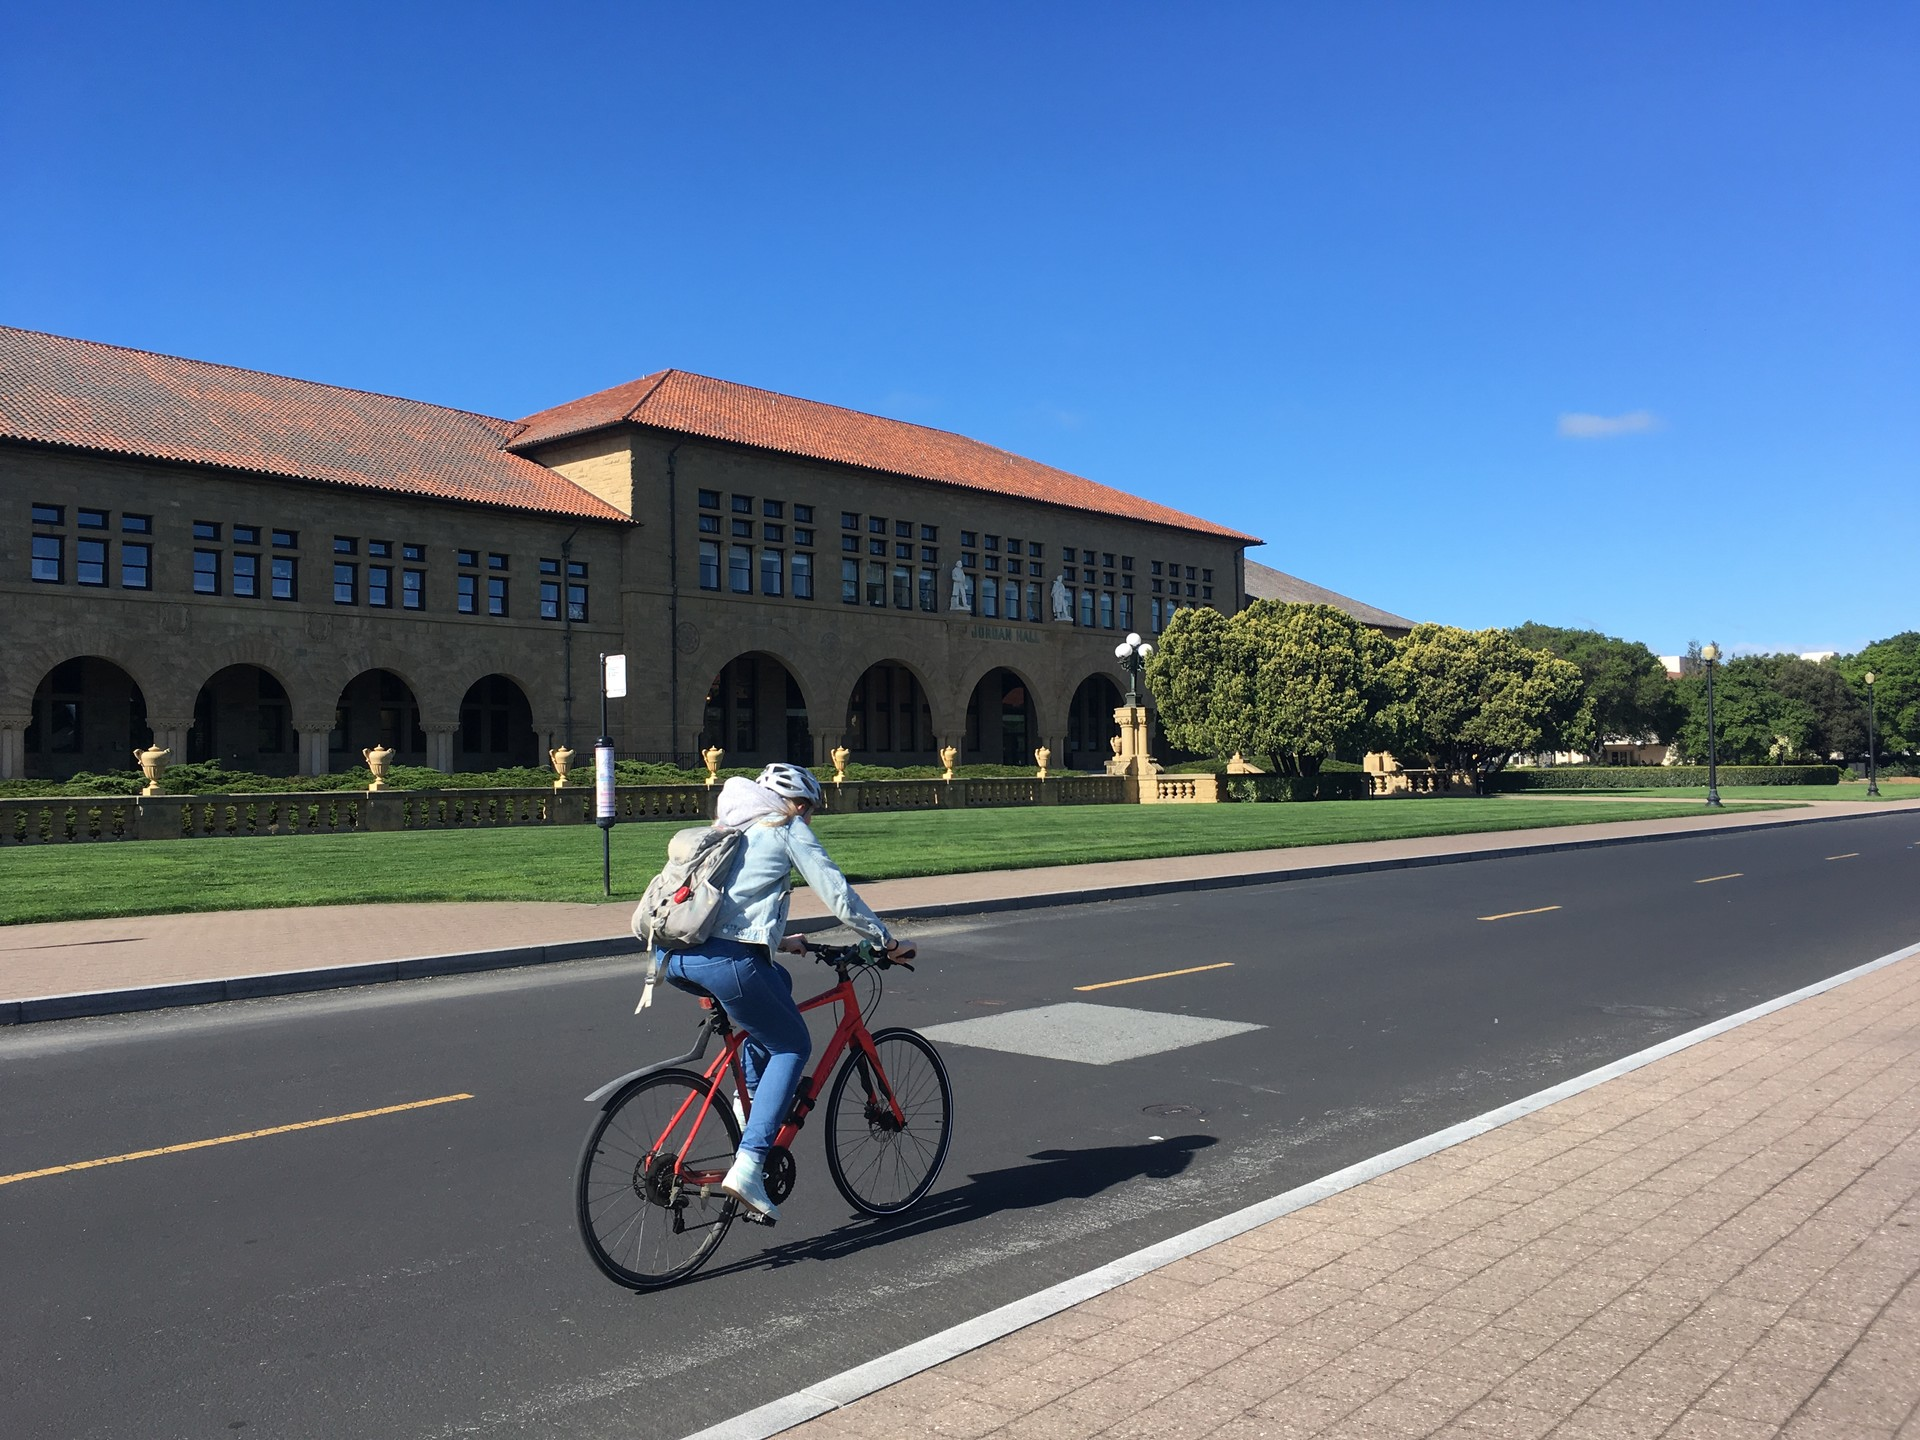 Santa Clara County officials are concerned Stanford's plans for expansion could worsen traffic in the region, among other concerns.